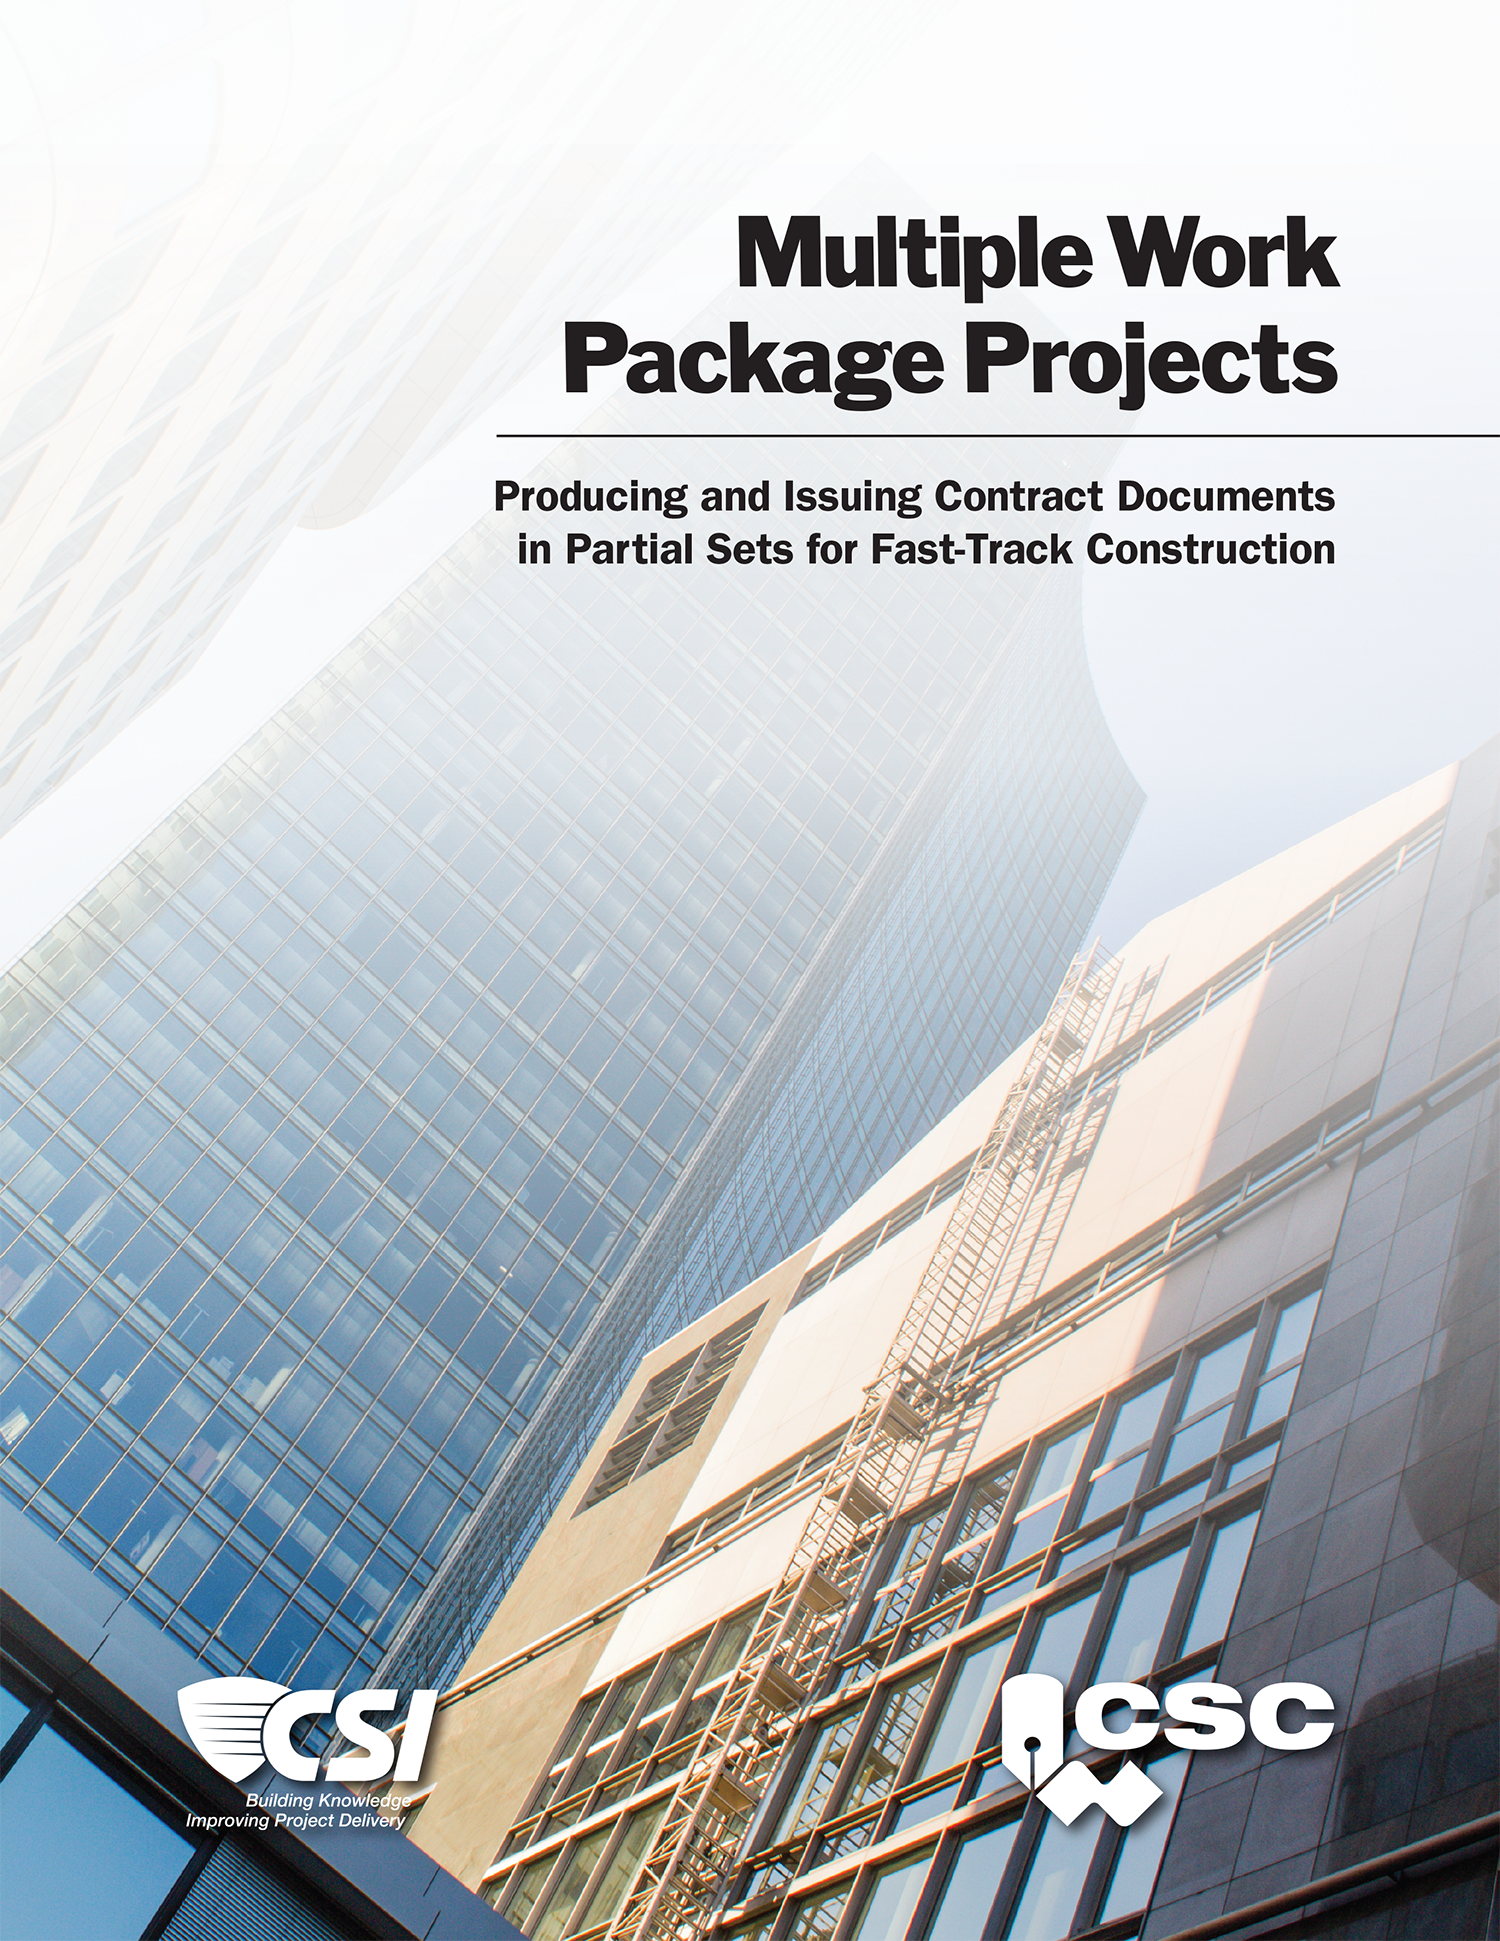 Multiple Work Package Projects